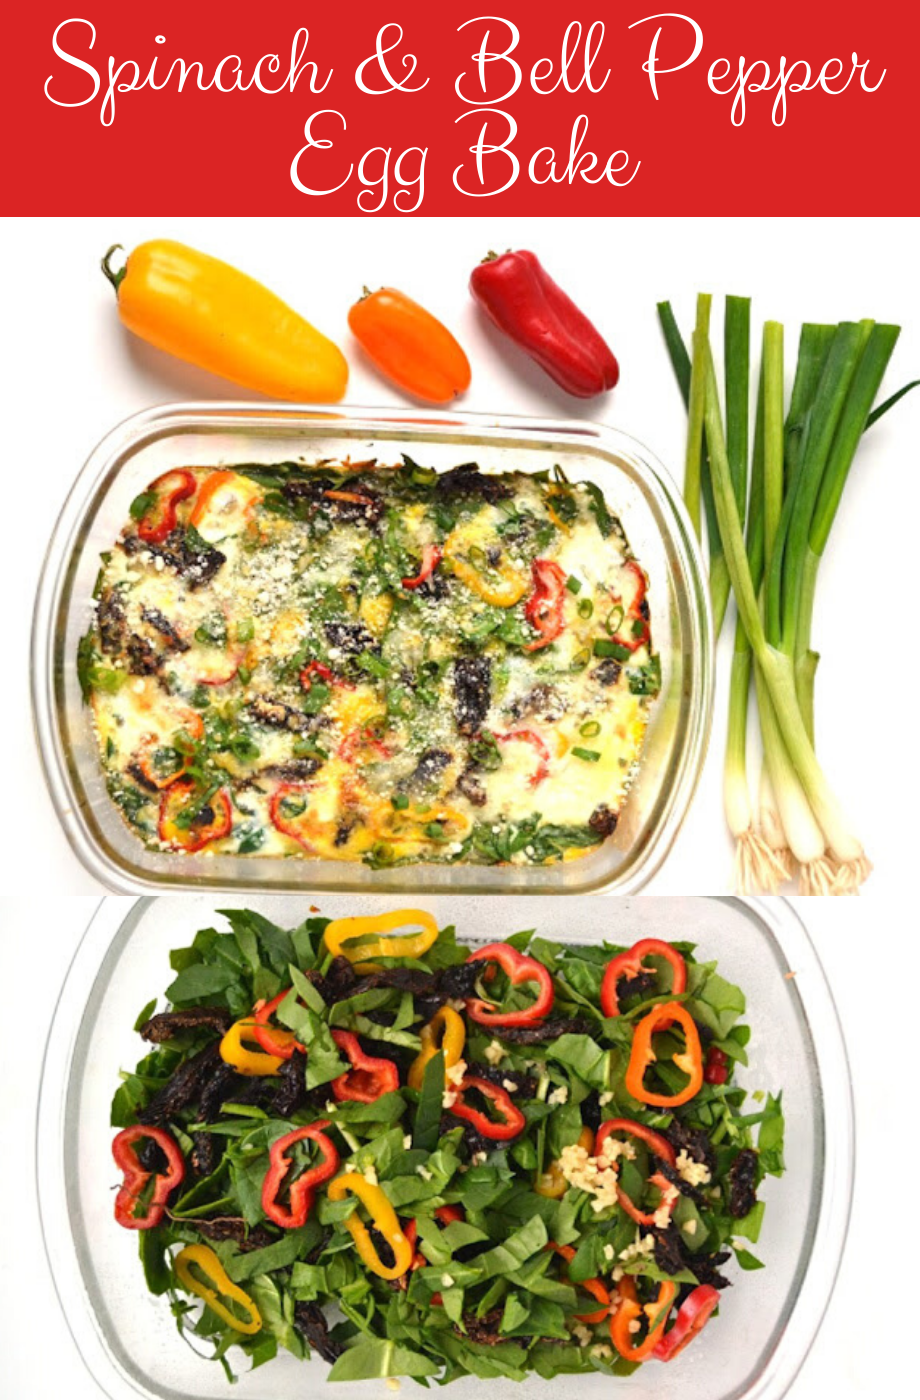 Spinach and Bell Pepper Egg Bake